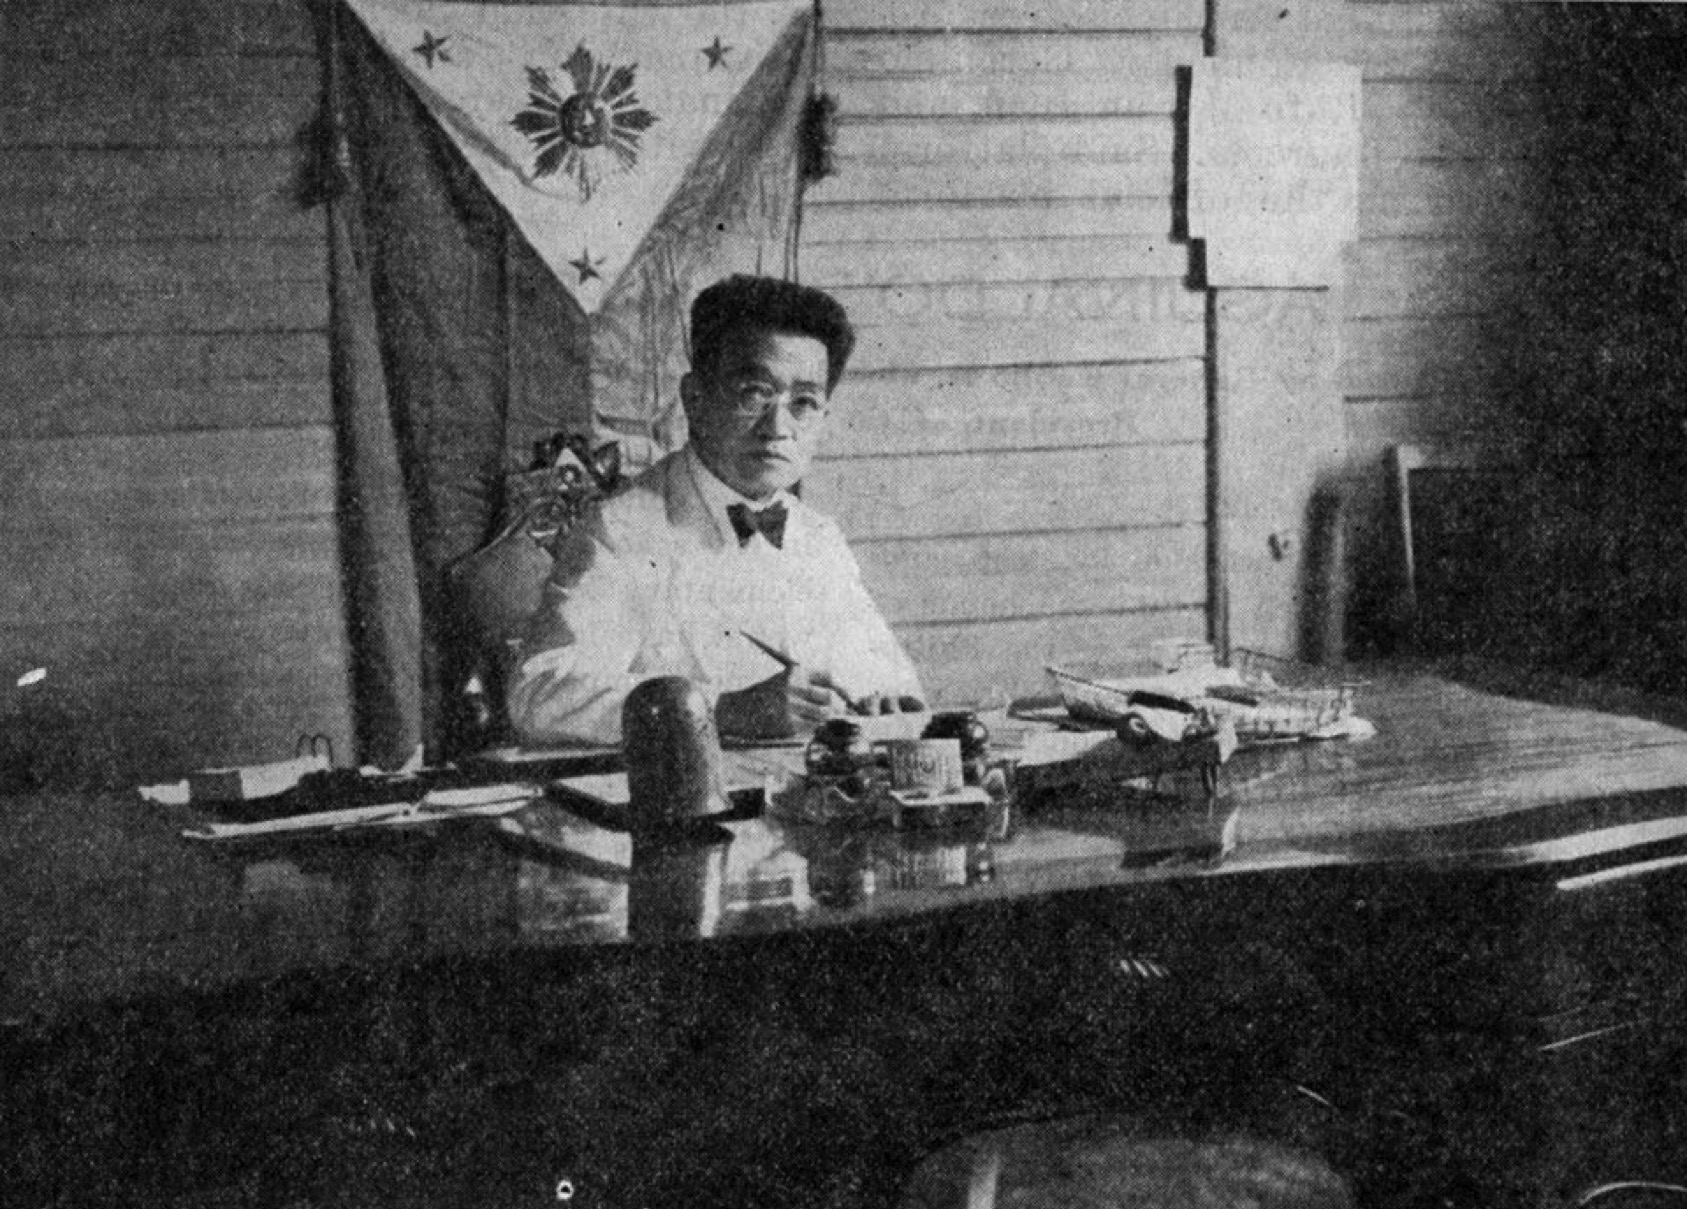 philippine government under general emilio aguinaldo The war in the visayas, feb 11 general leandro fullon was appointed by emilio aguinaldo as commanding general of all filipino aguinaldo abolished the federal republic and appointed delgado as the civil and military governor of iloilo province under the central philippine government.